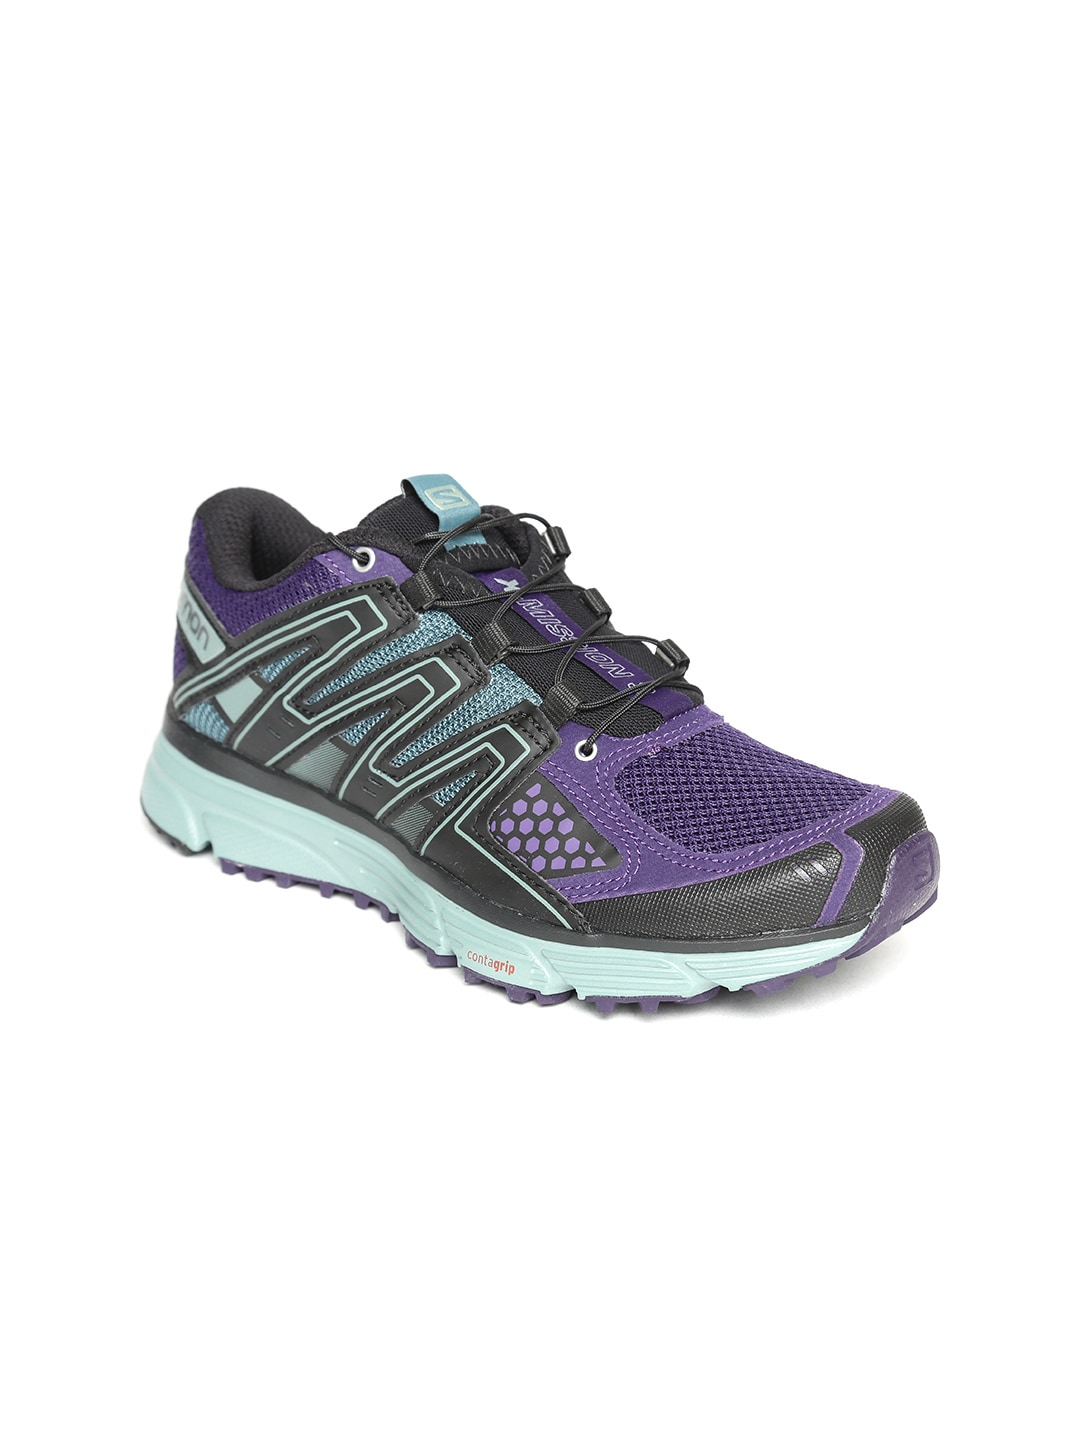 e6c4e9ed Salomon Women Purple Running Shoes